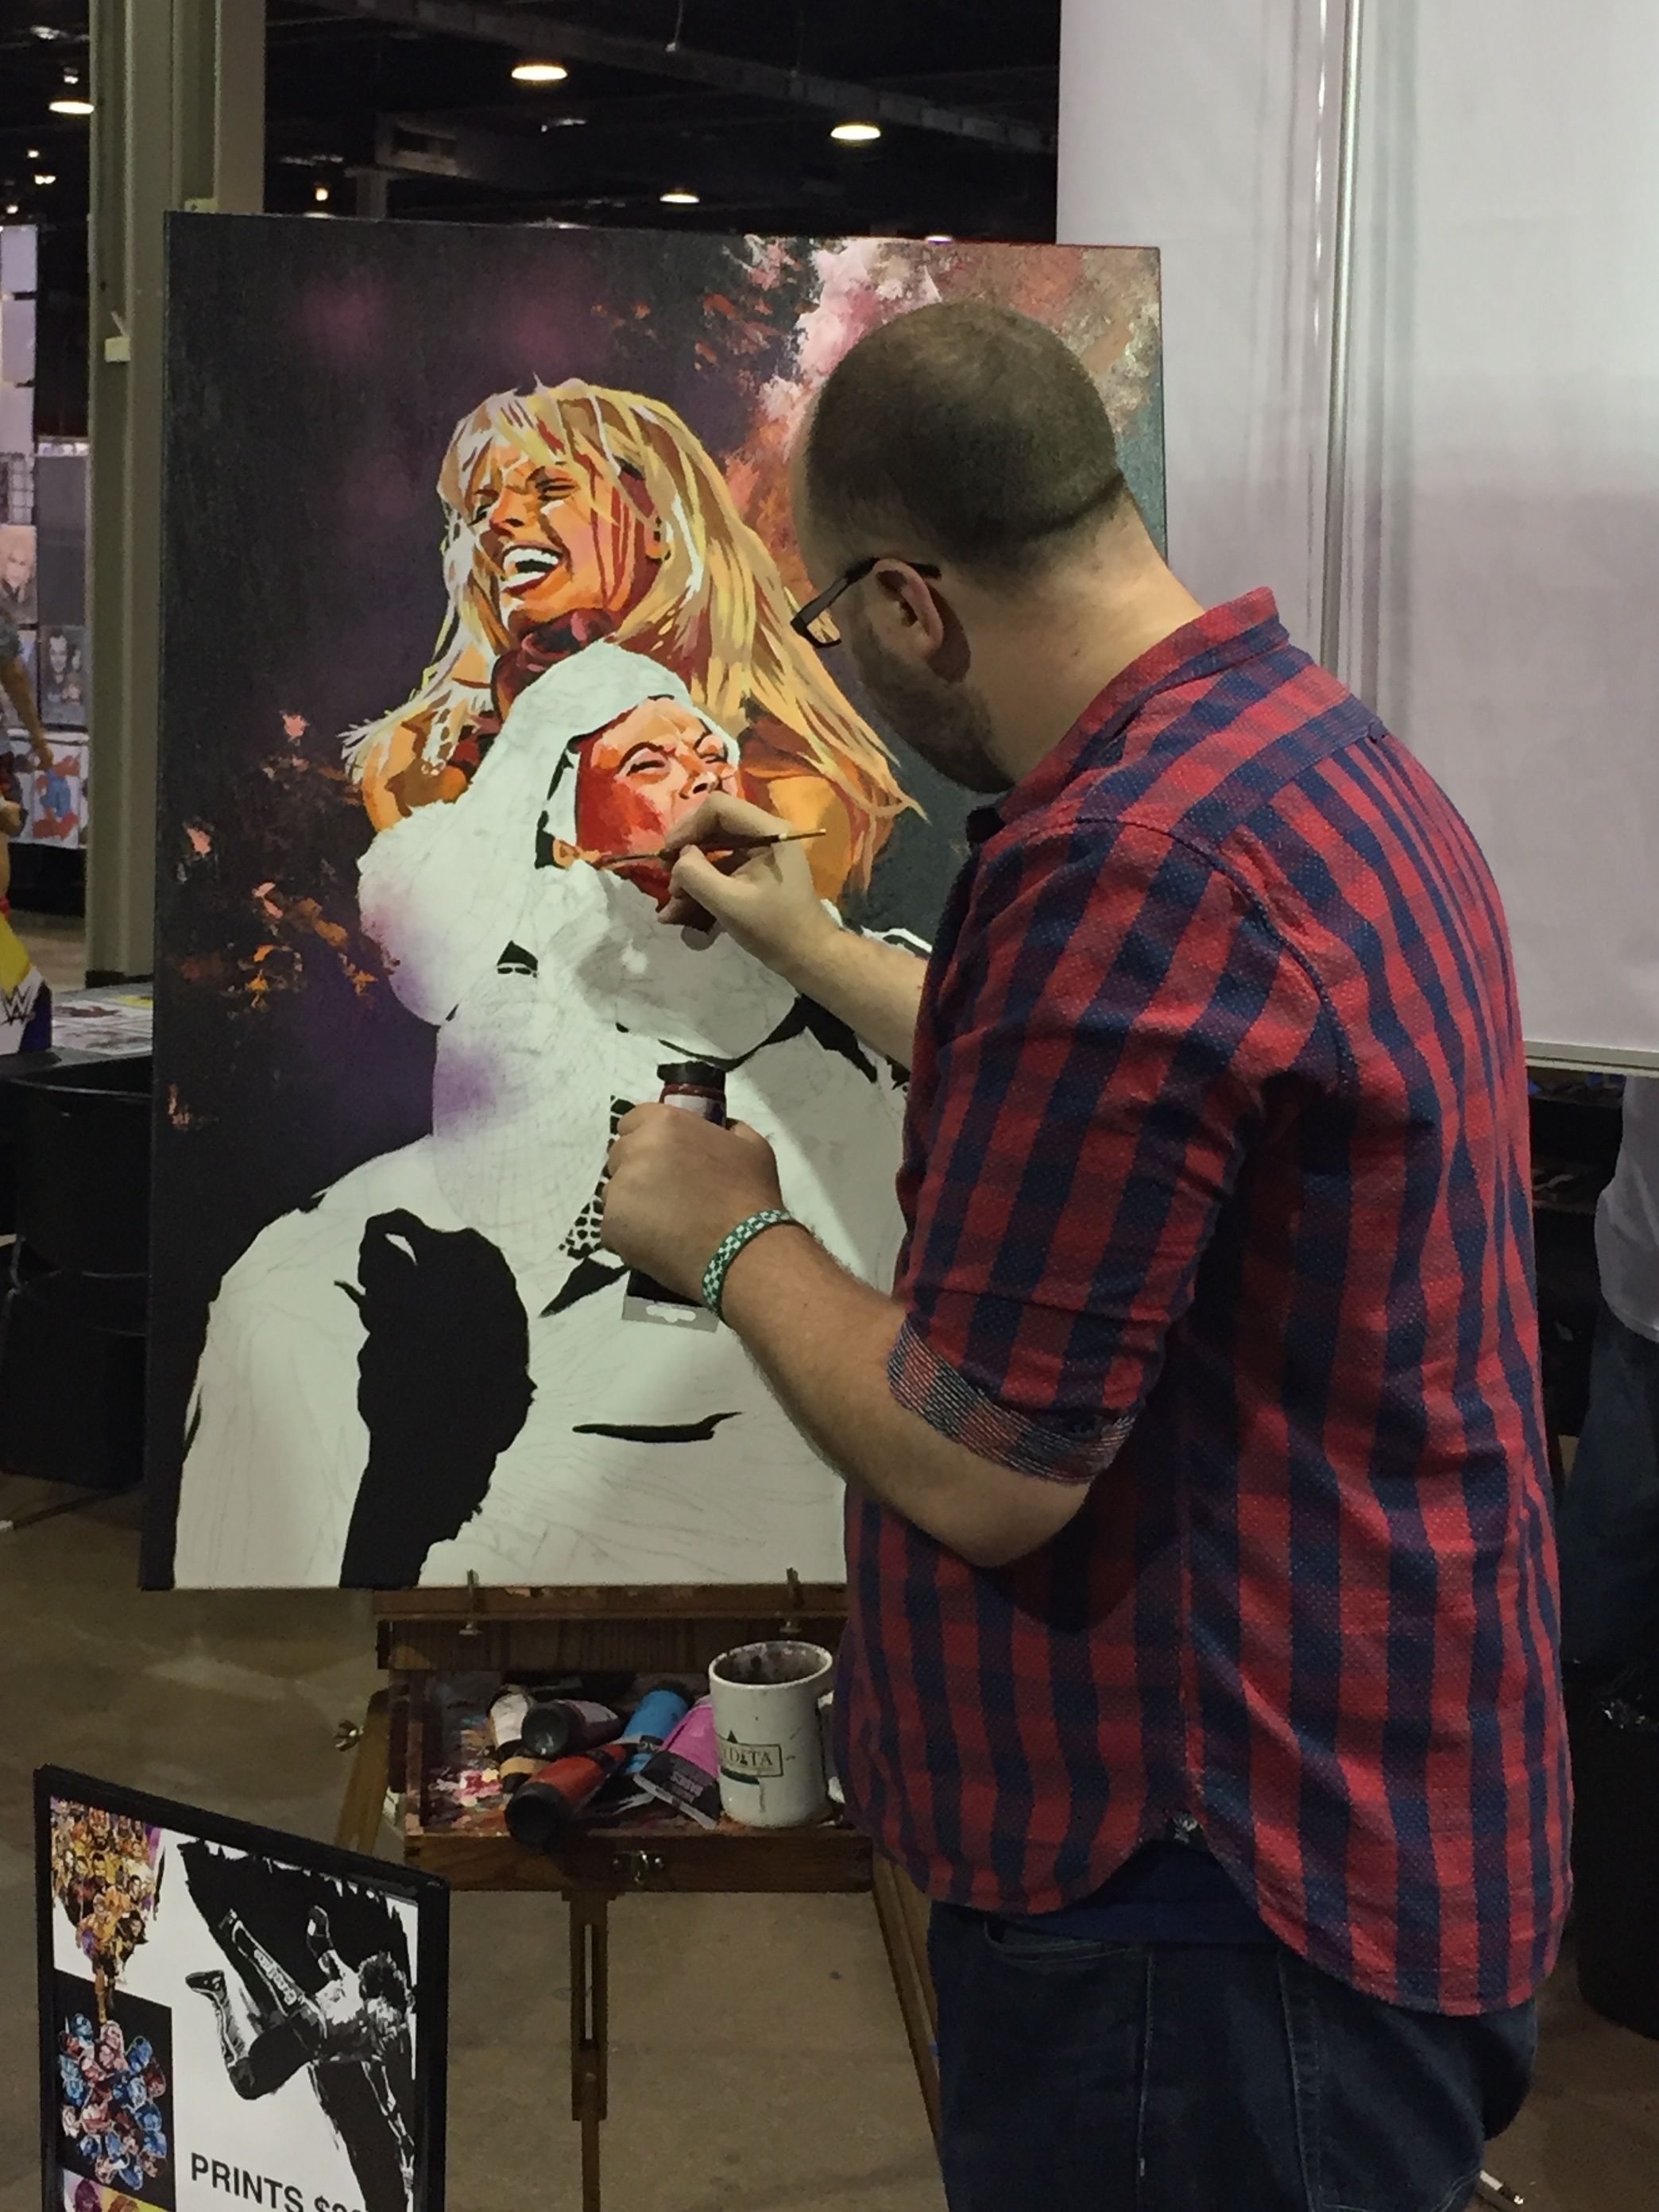 Rob Schamberger works on a piece depicting WWE Hall of Famers Trish Stratus and Lita during Wizard World Chicago in August 2017. (Photo by Mike Pankow)